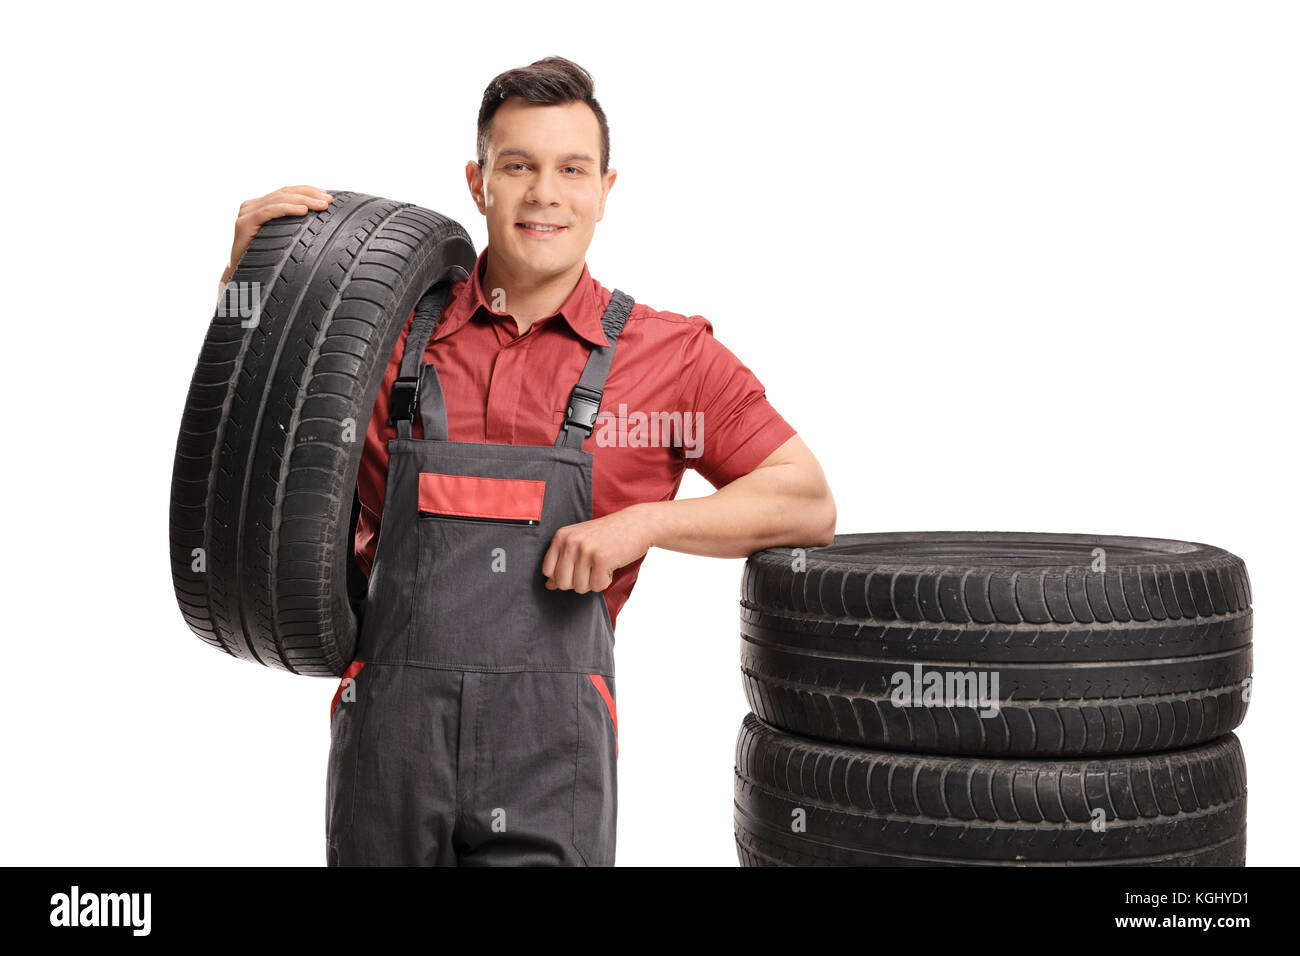 Mechanic leaning on a stack of tires isolated on white background - Stock Image